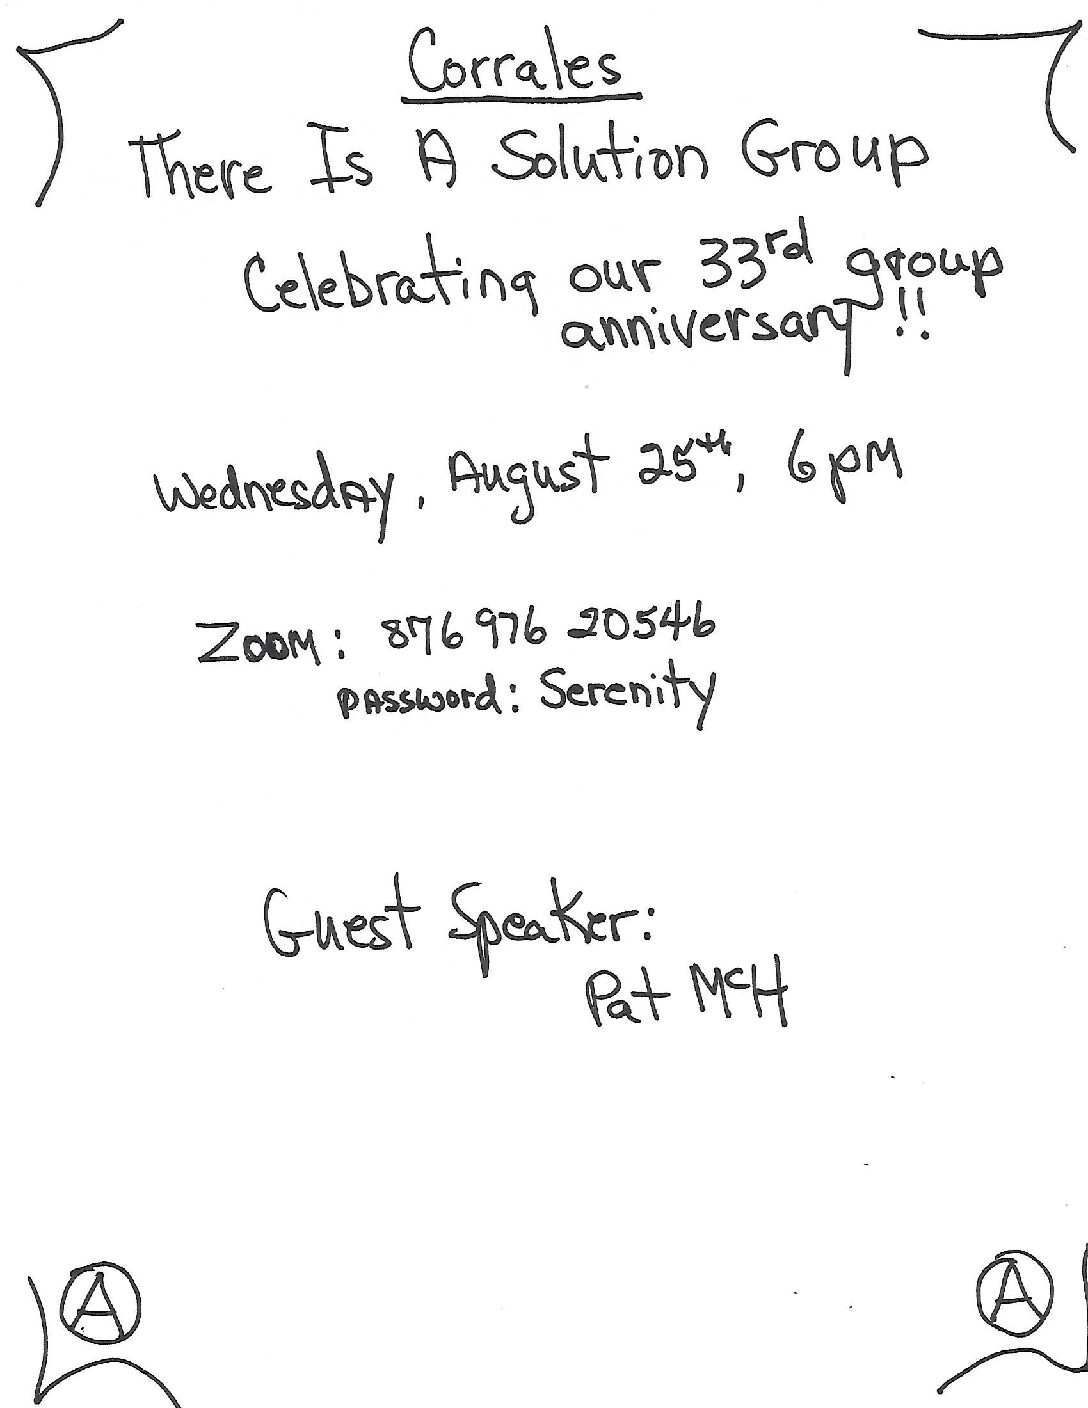 There Is A Solution Group 33rd Anniversary